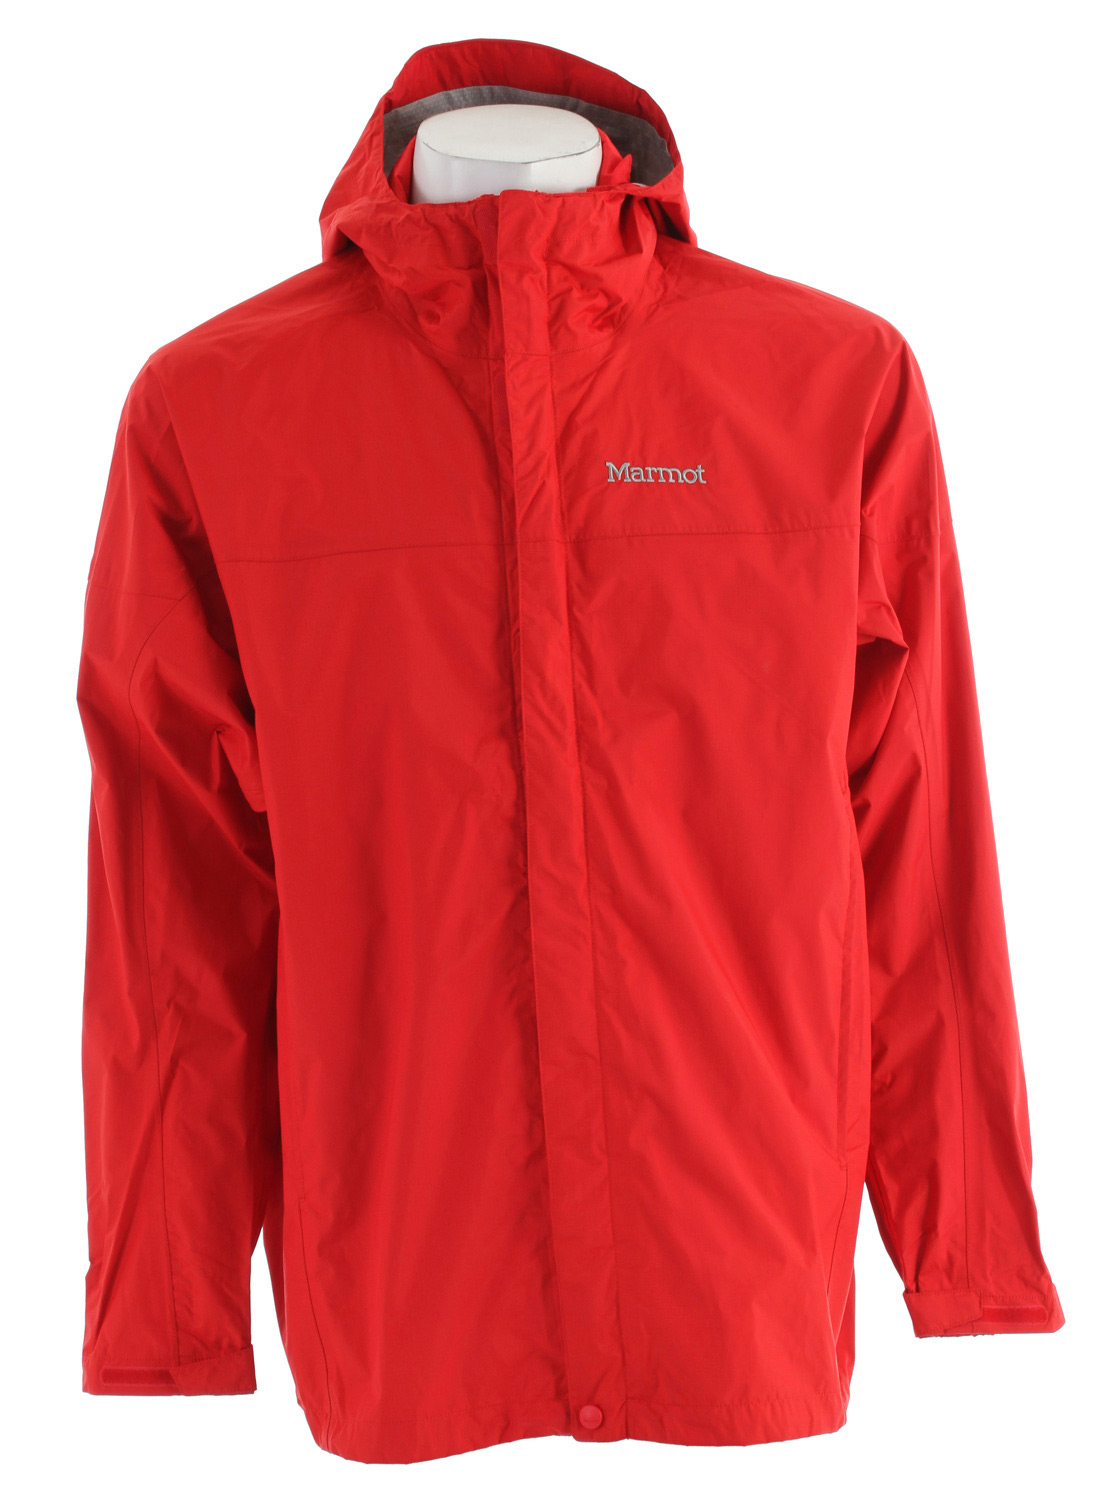 "Key Features of the Marmot PreCip Jacket: Weight 0lb 13.1oz (371g) Materials PreCip 2.5 100% Nylon Ripstop 2.7oz/yd PreCip Dry Touch Technology, Waterproof/Breathable 100% Seam Taped Full Visibility Roll-Up Hood with Integral Collar PitZips Pack Pockets Double Storm Flap Over Zipper with Snap/Velcro Closure Elastic Draw Cord Hem DriClime Lined Chin Guard Angel-Wing Movement 29"" Center Back Length for Size Medium - $69.95"